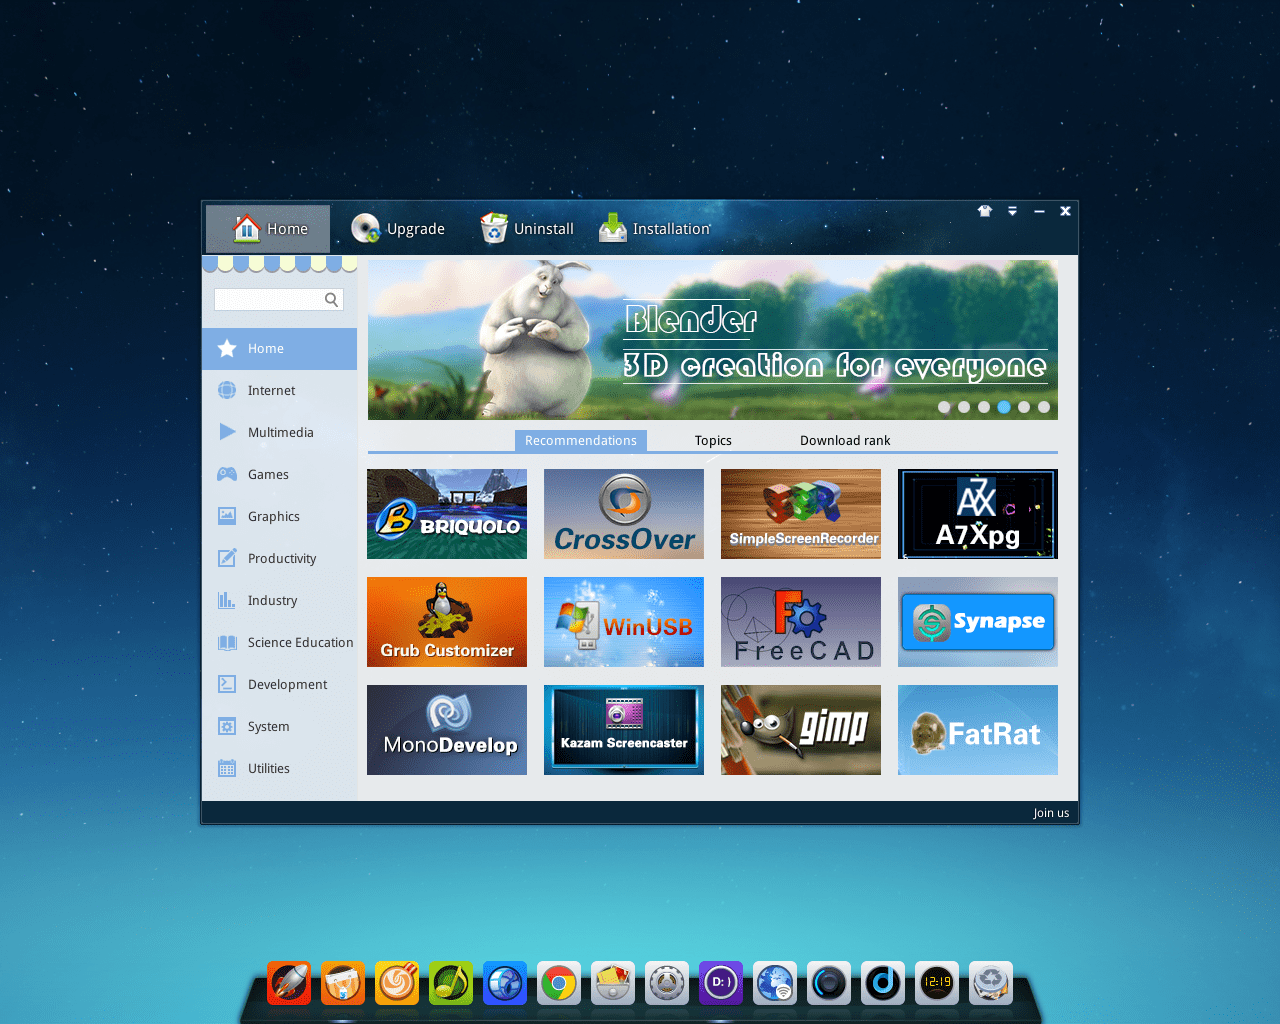 deepin 15.10 es una de las más hermosas y modernas distribuciones de Linux que es comparable a Windows y Mac OS